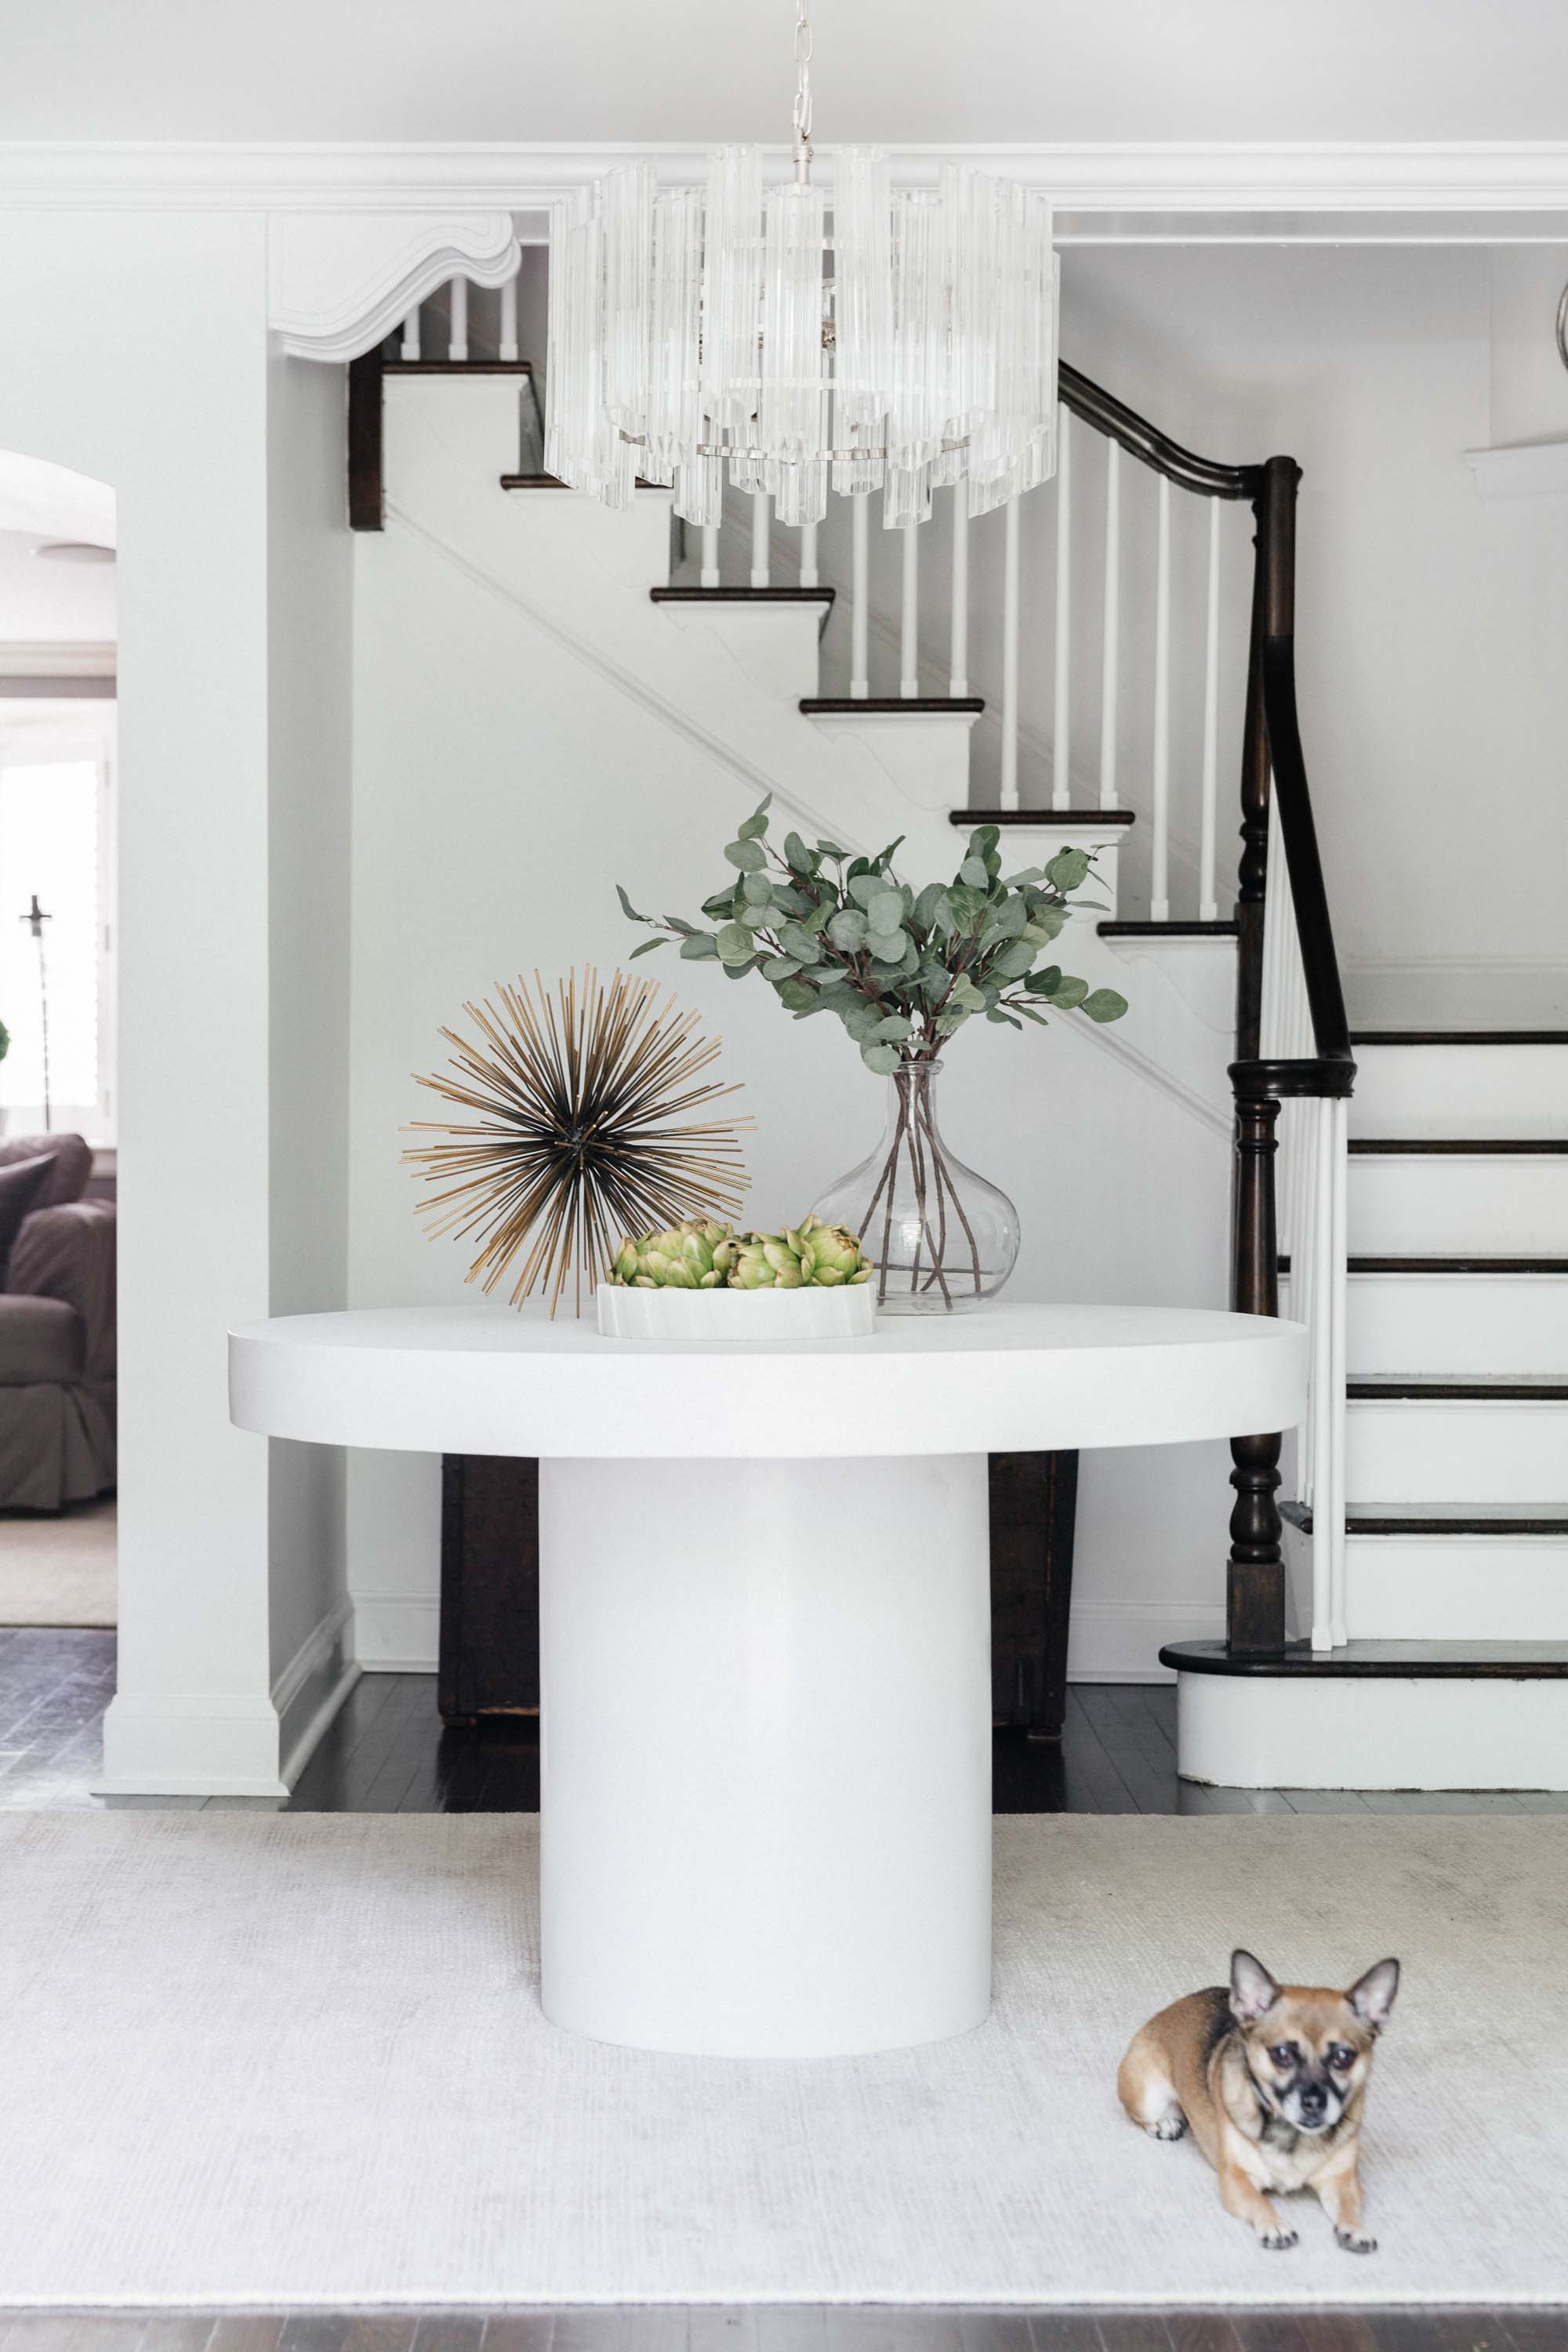 House interior with wooden stairway, round table, plant on top and a cute dog